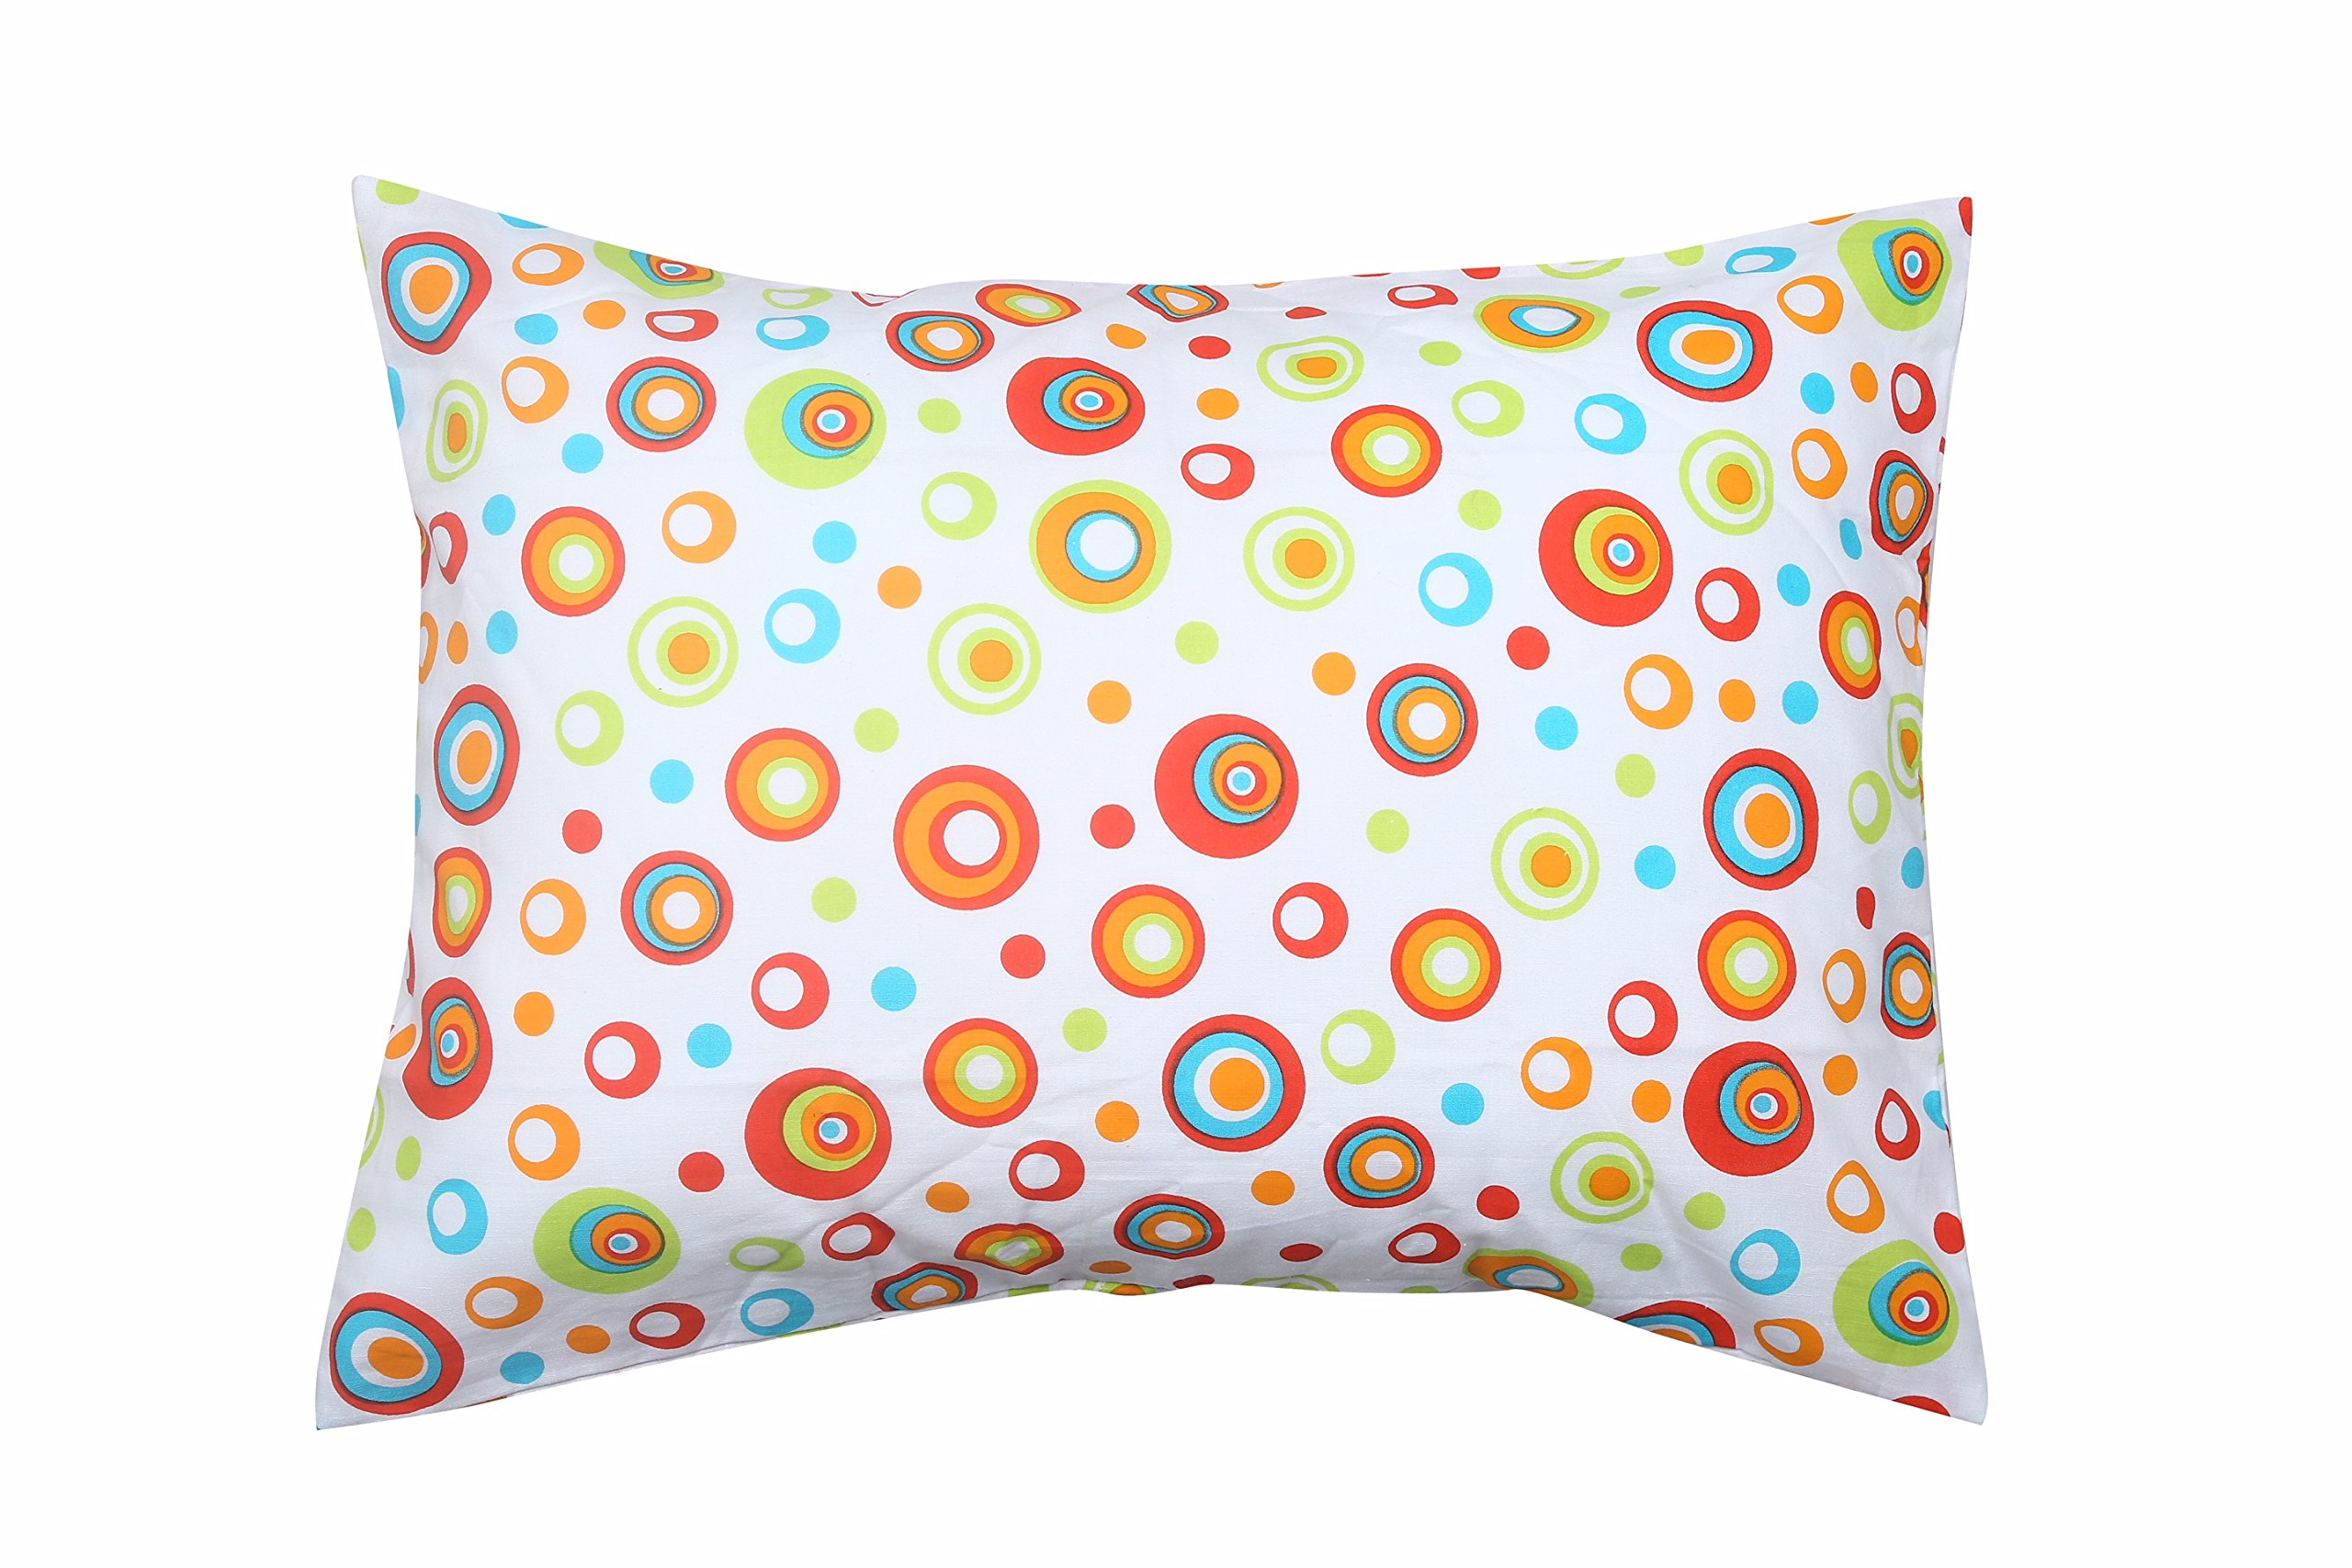 YourEcoFamily Toddler Pillow-14x19,Certified